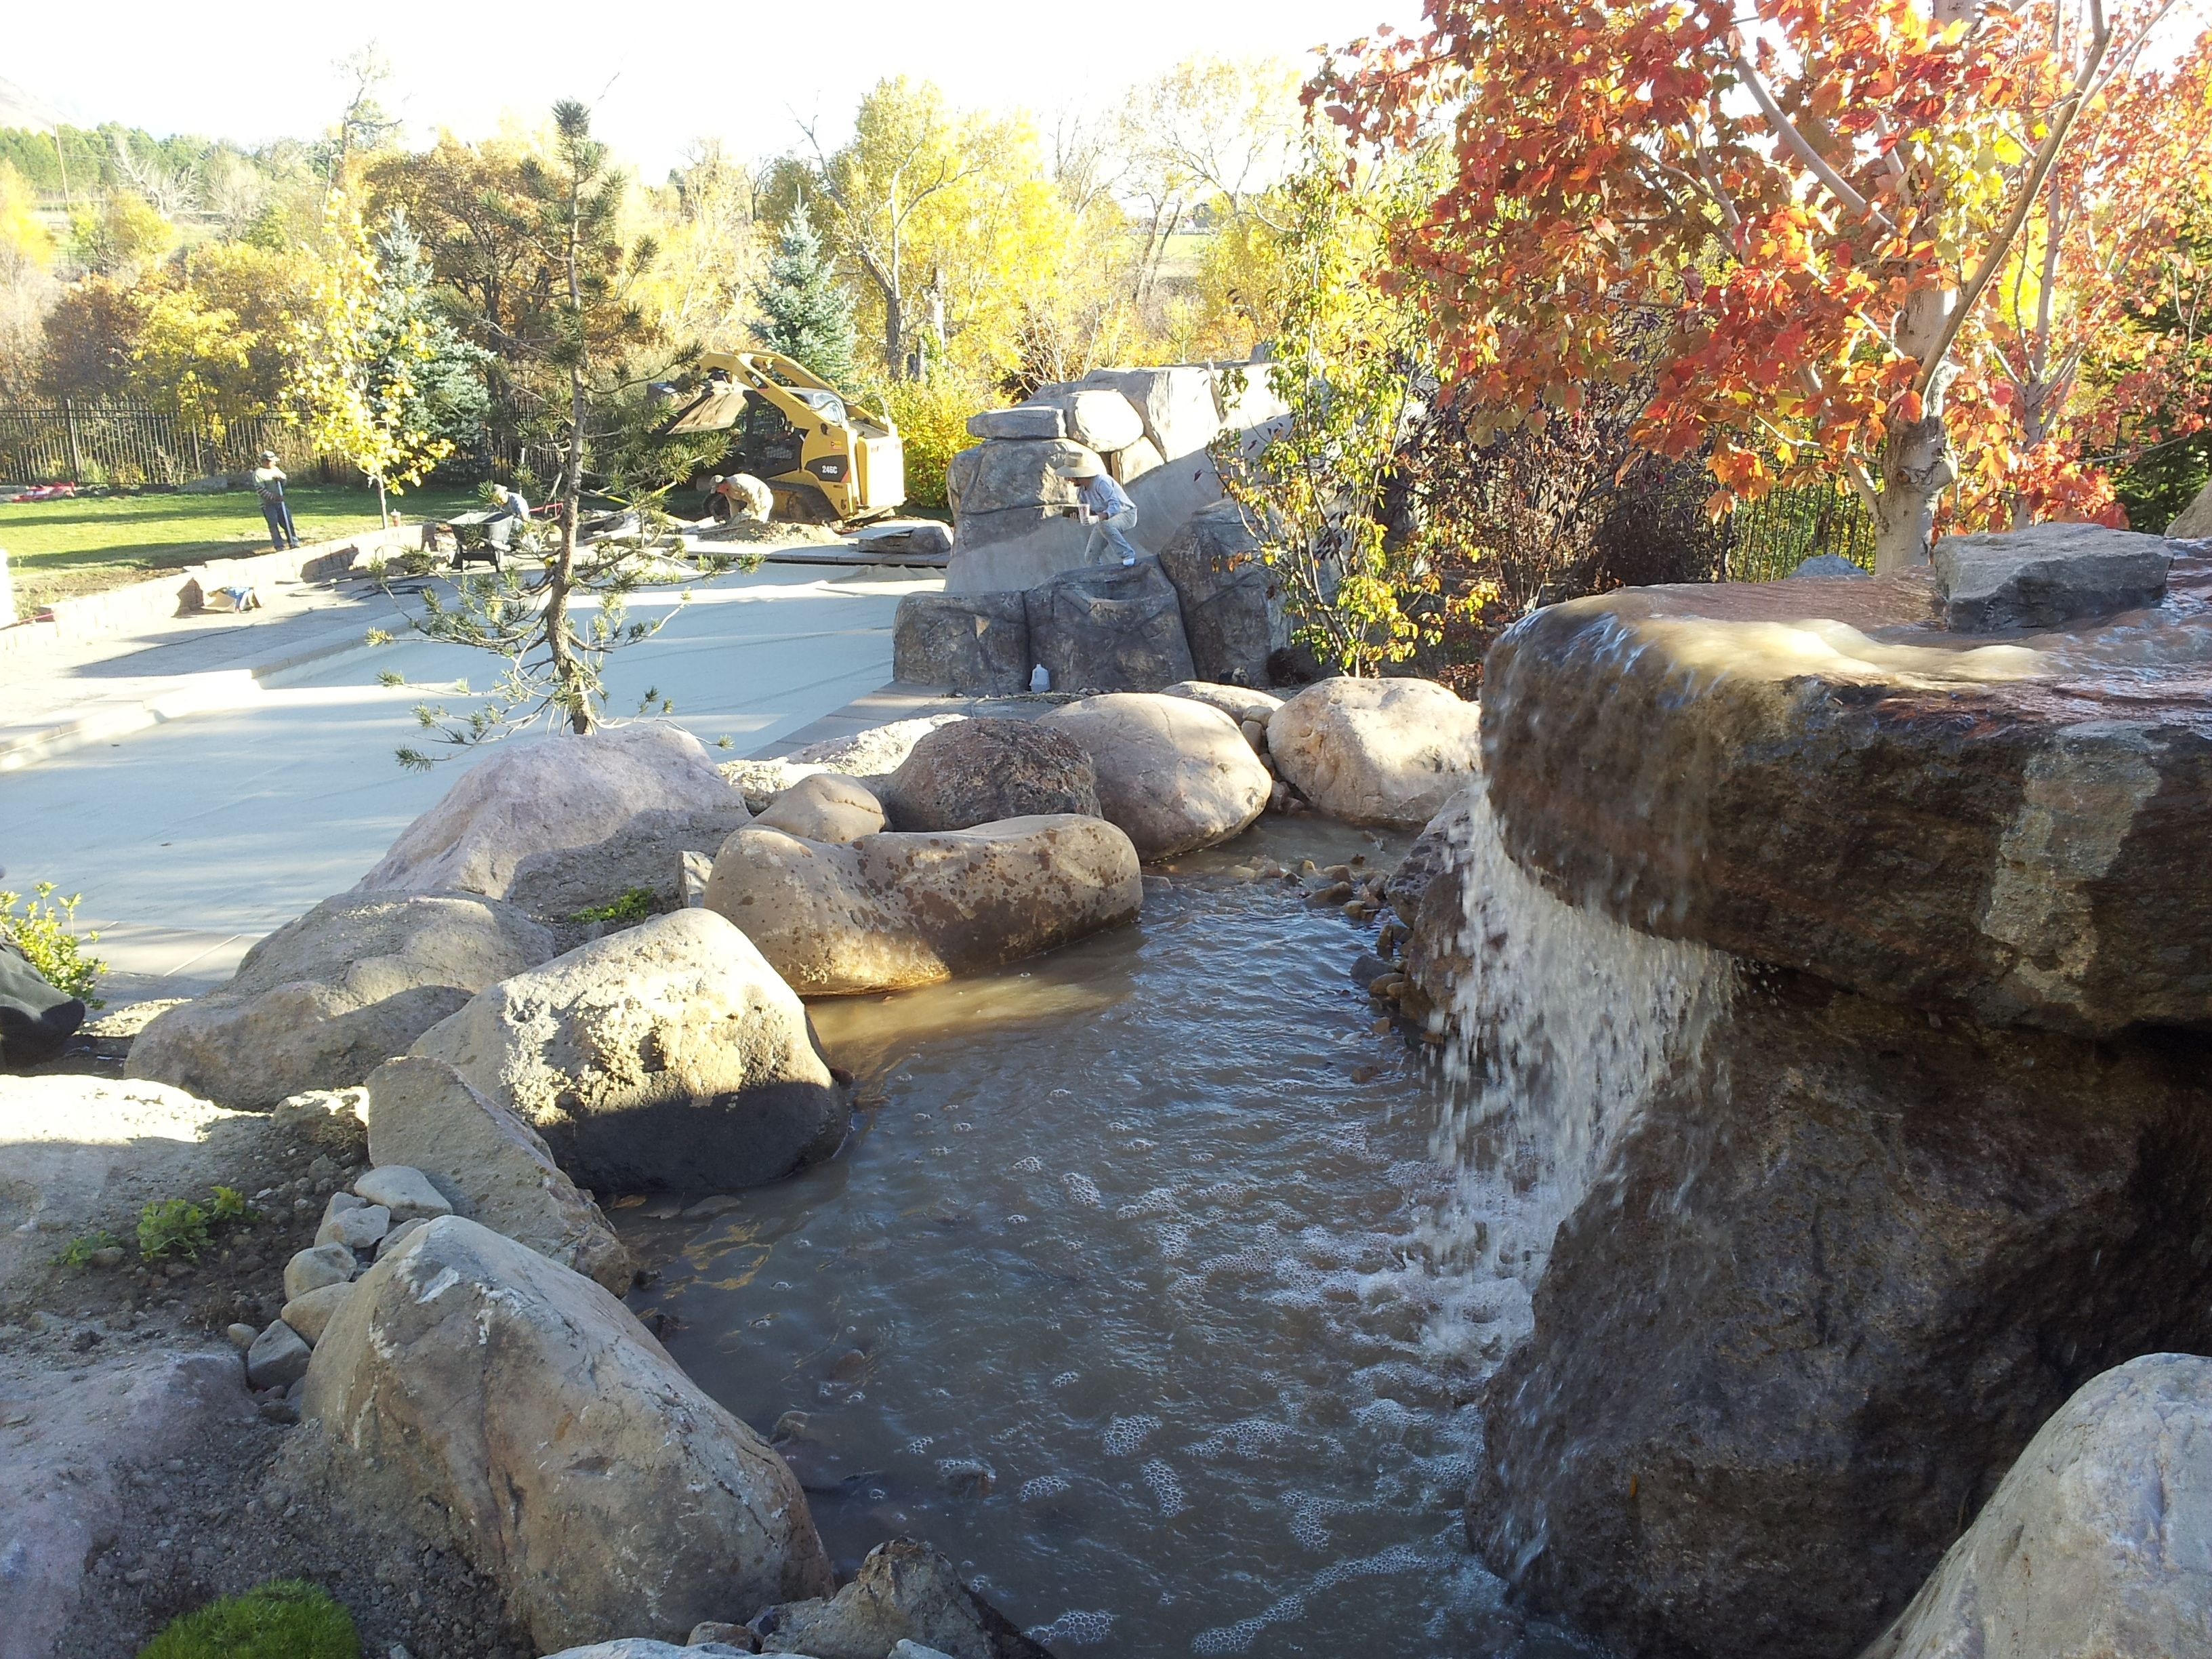 Utah landscapers landscape landscaping the backyard with for Landscaping rocks yuba city ca